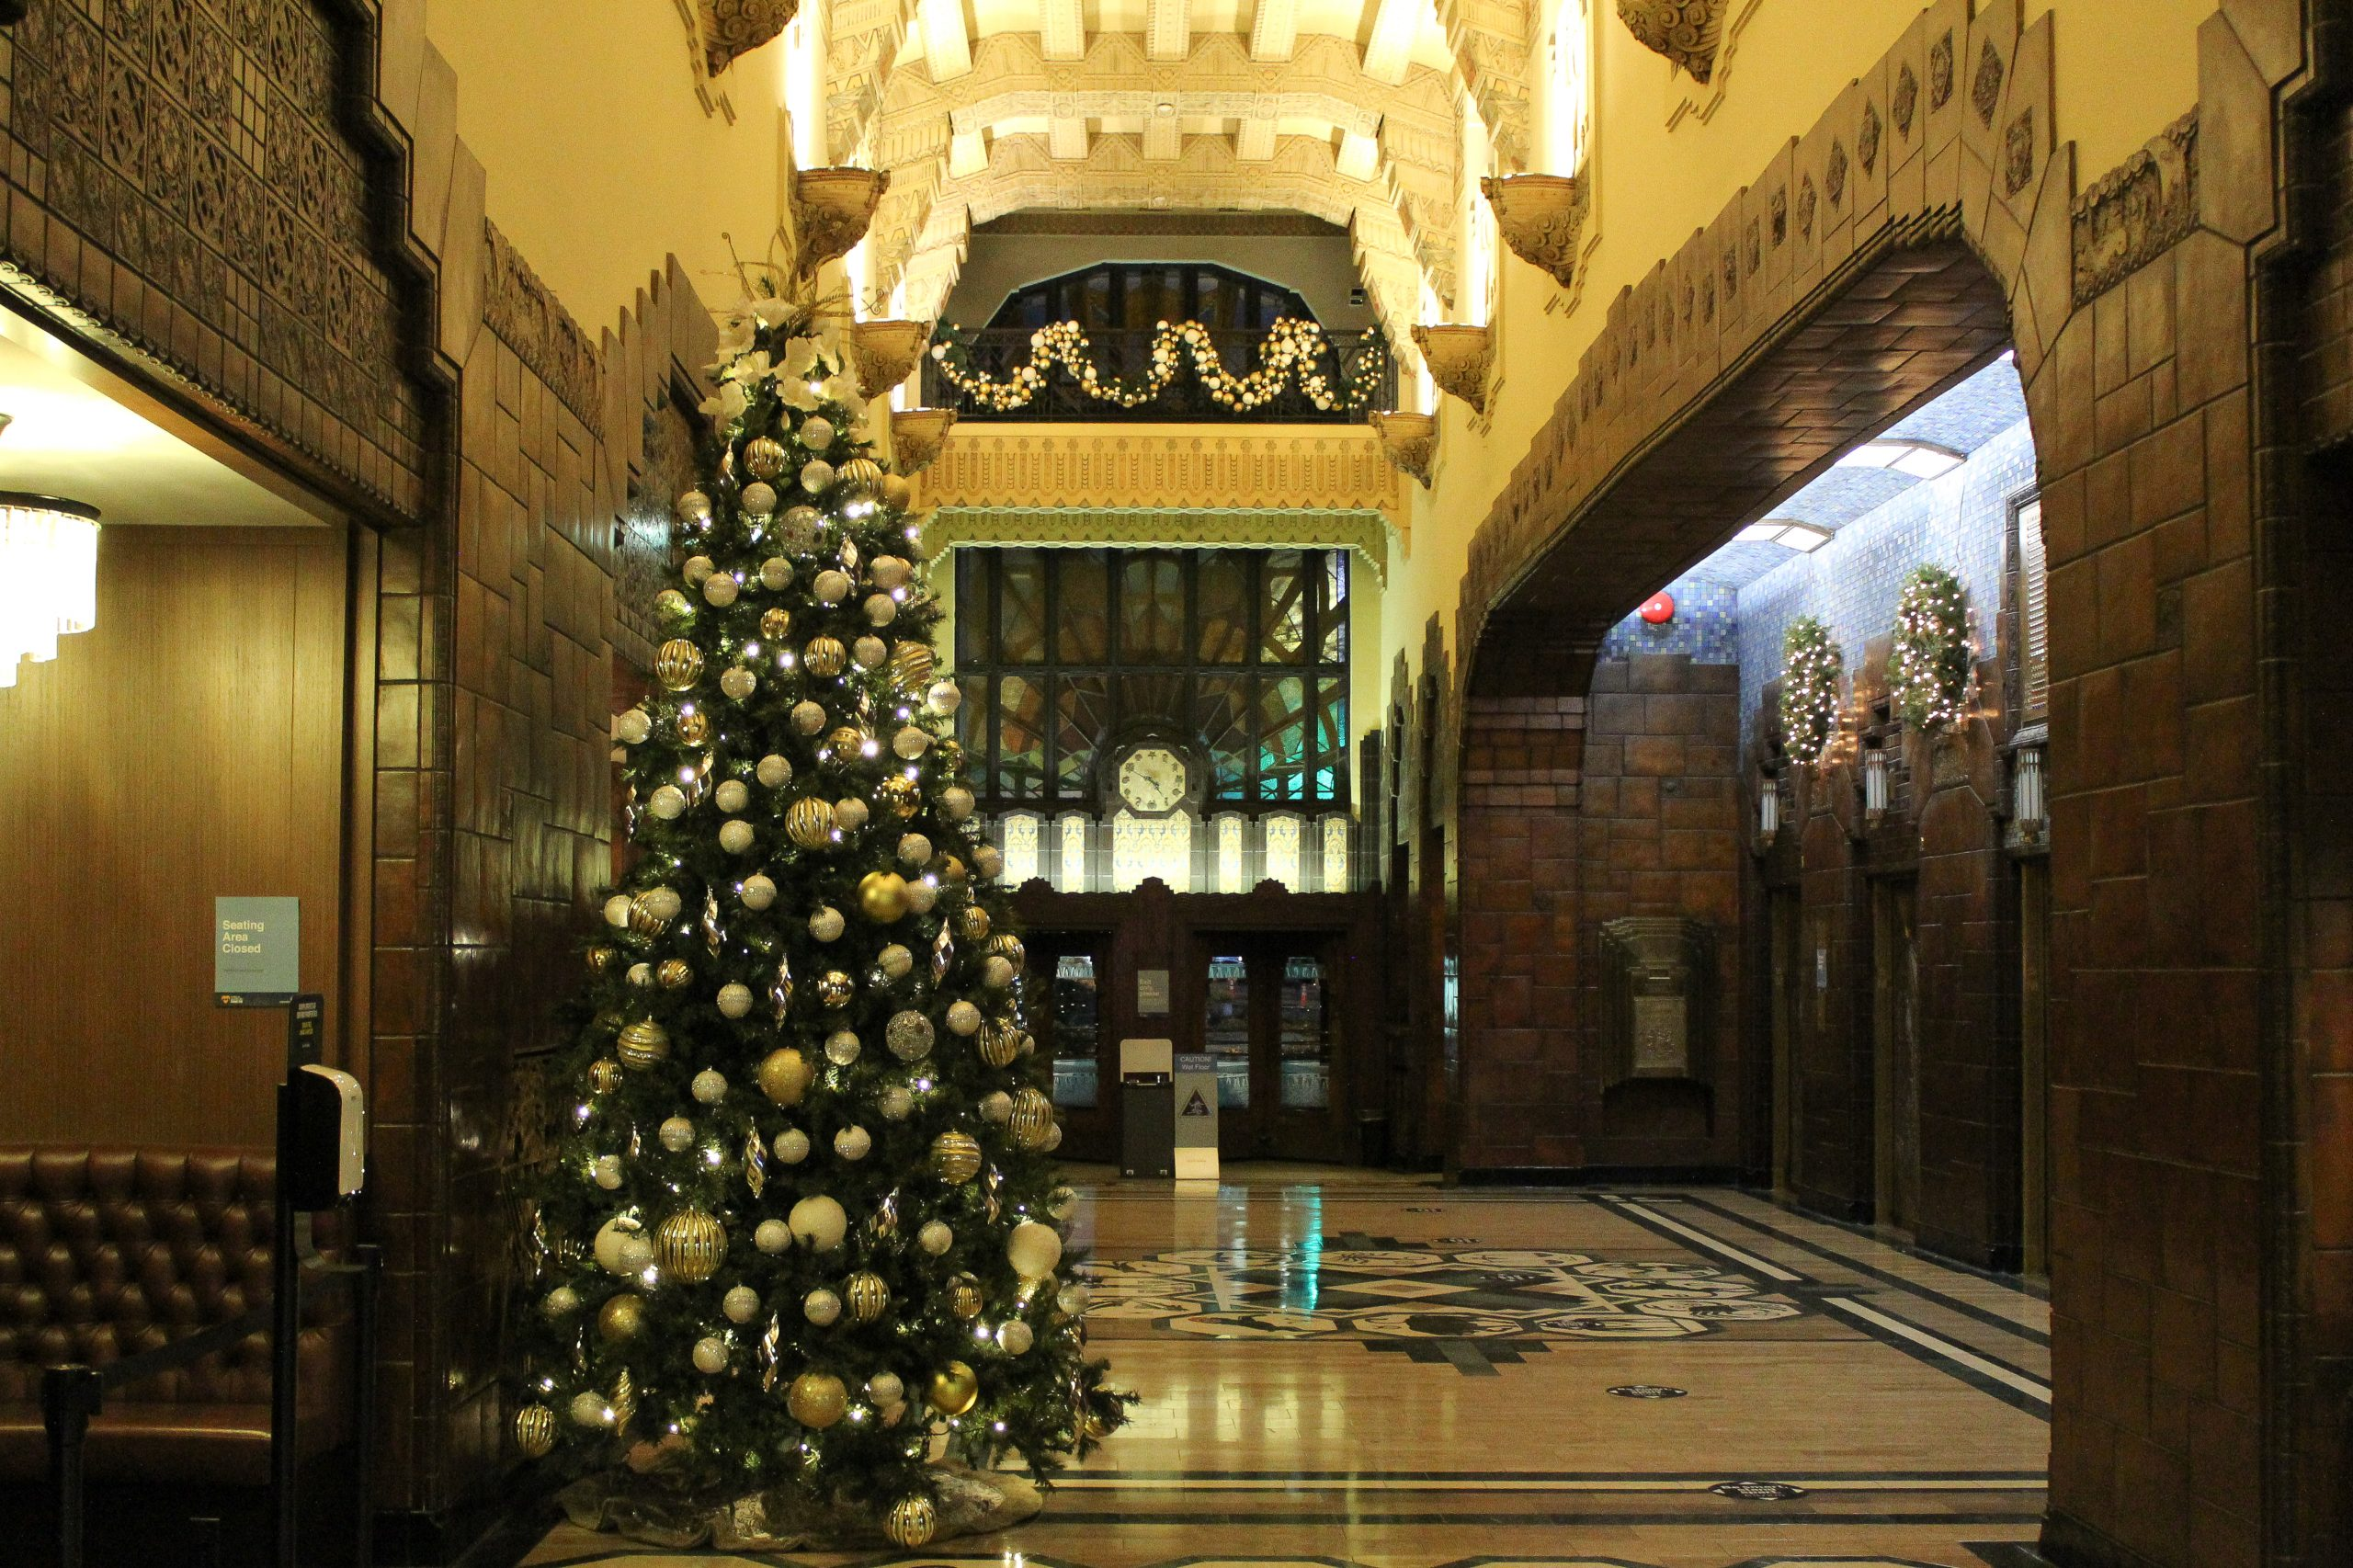 marine building christmas decor with 10' tall christmas tree decorated in white, silver and gold decor and railing garland